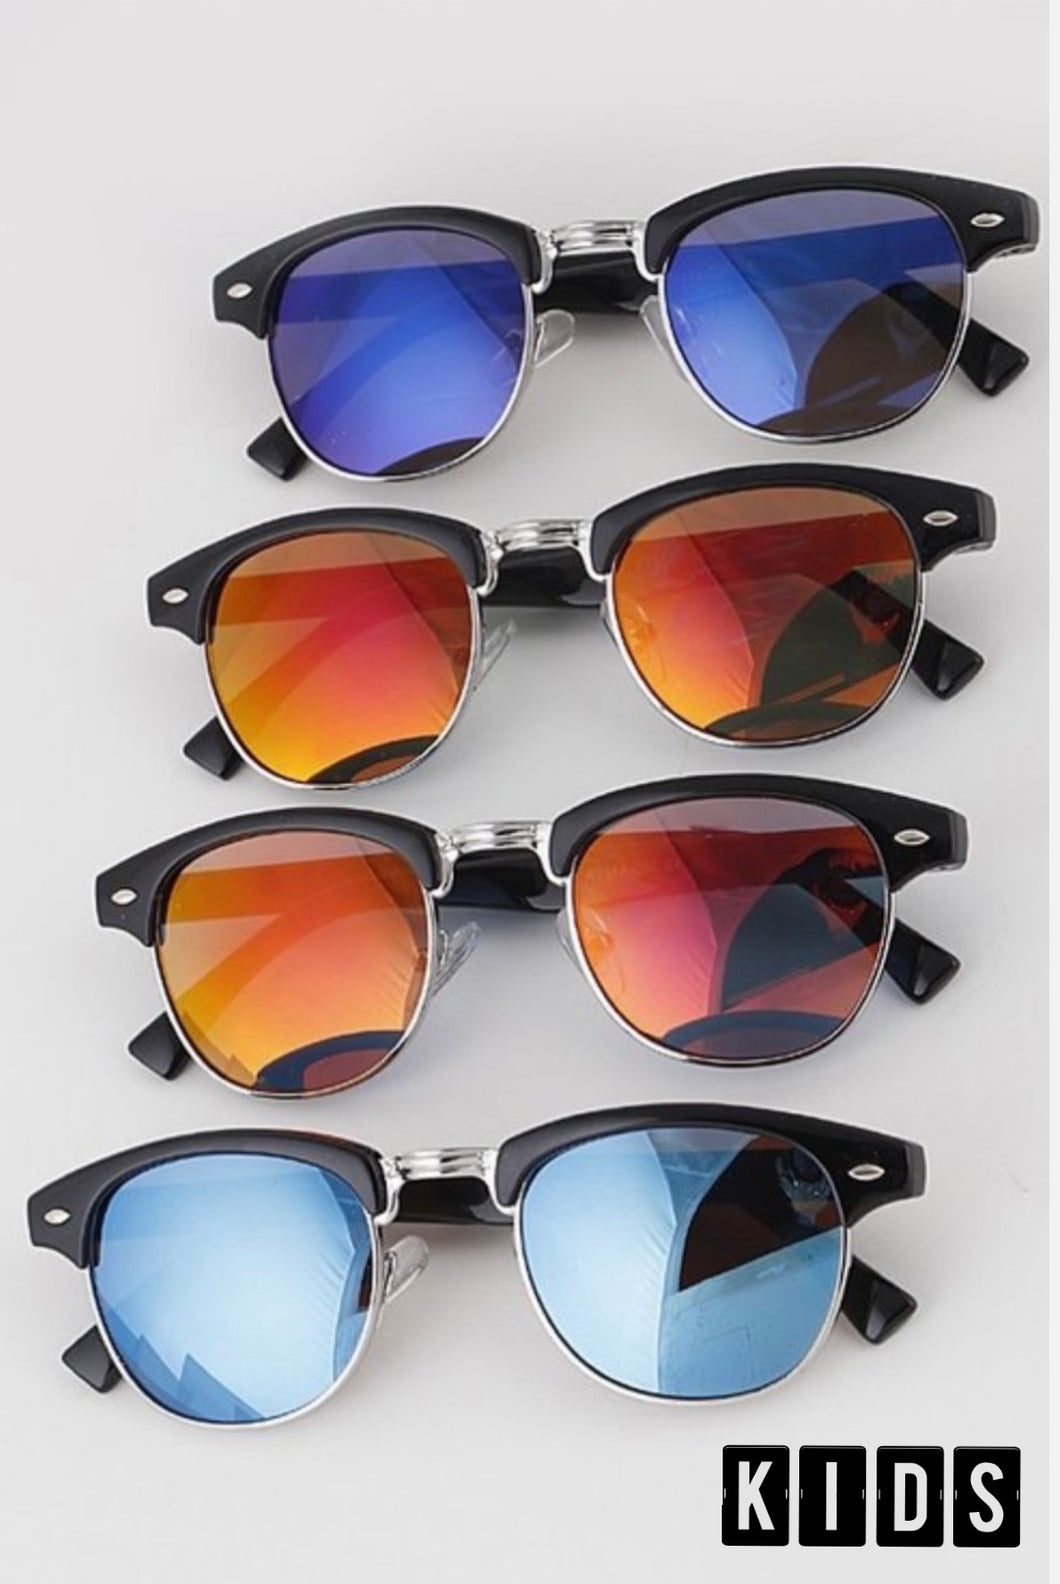 Kid's Retro Mirrored Shades